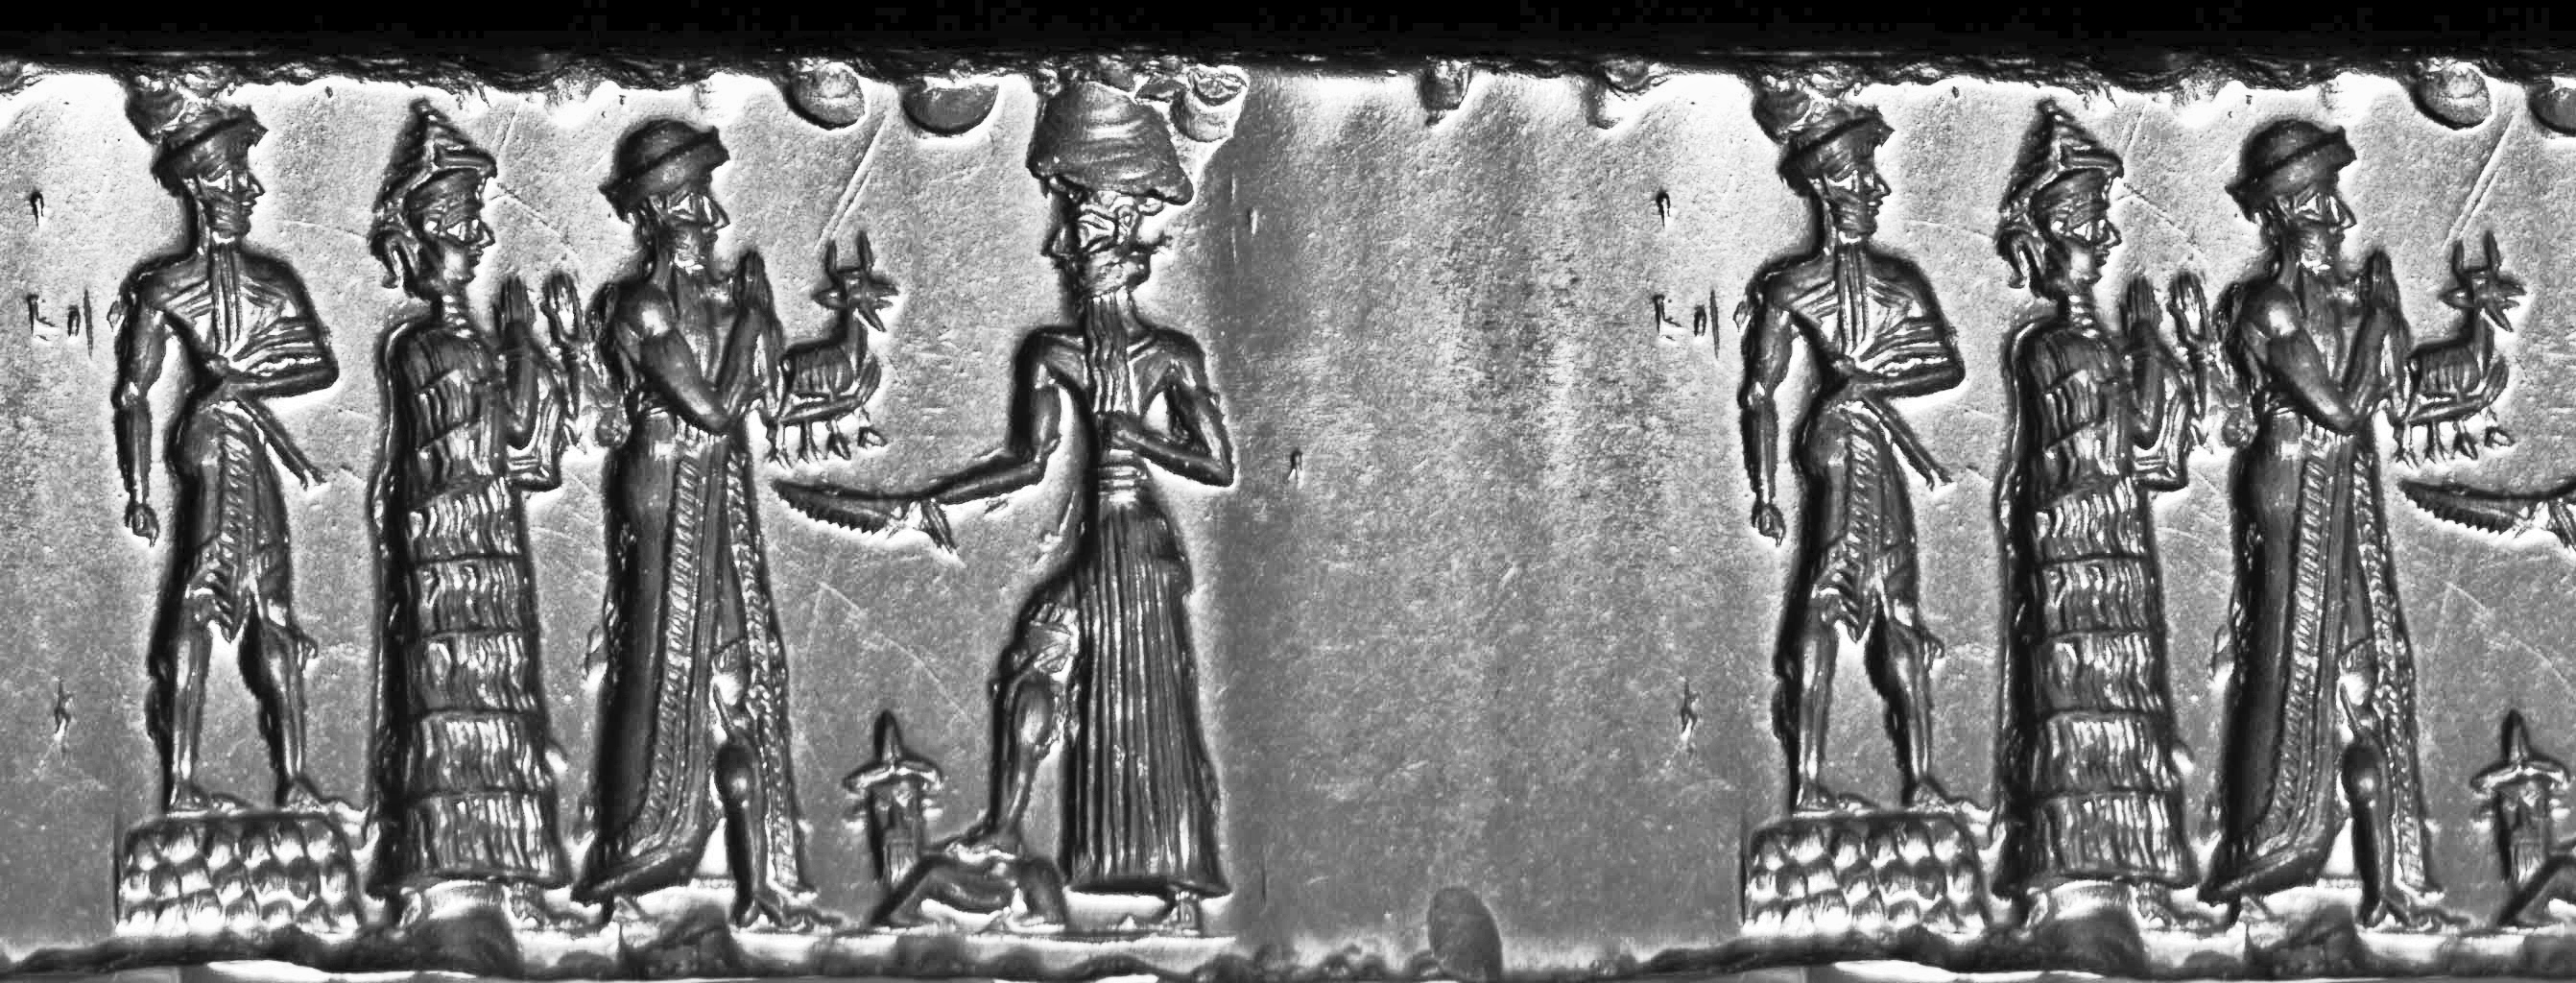 5u - mixed-breed high-priest of Ur standing upon Nannar's temple, his probable mother Ninsun, Nannar the patron god of Ur, & Nannar's son Utu, the Biblical hero Abraham's father Terah was also the high-priest of Ur, serving the same giant alien god calle Nannar by the Mesopotamians, called El by the Biblical authors